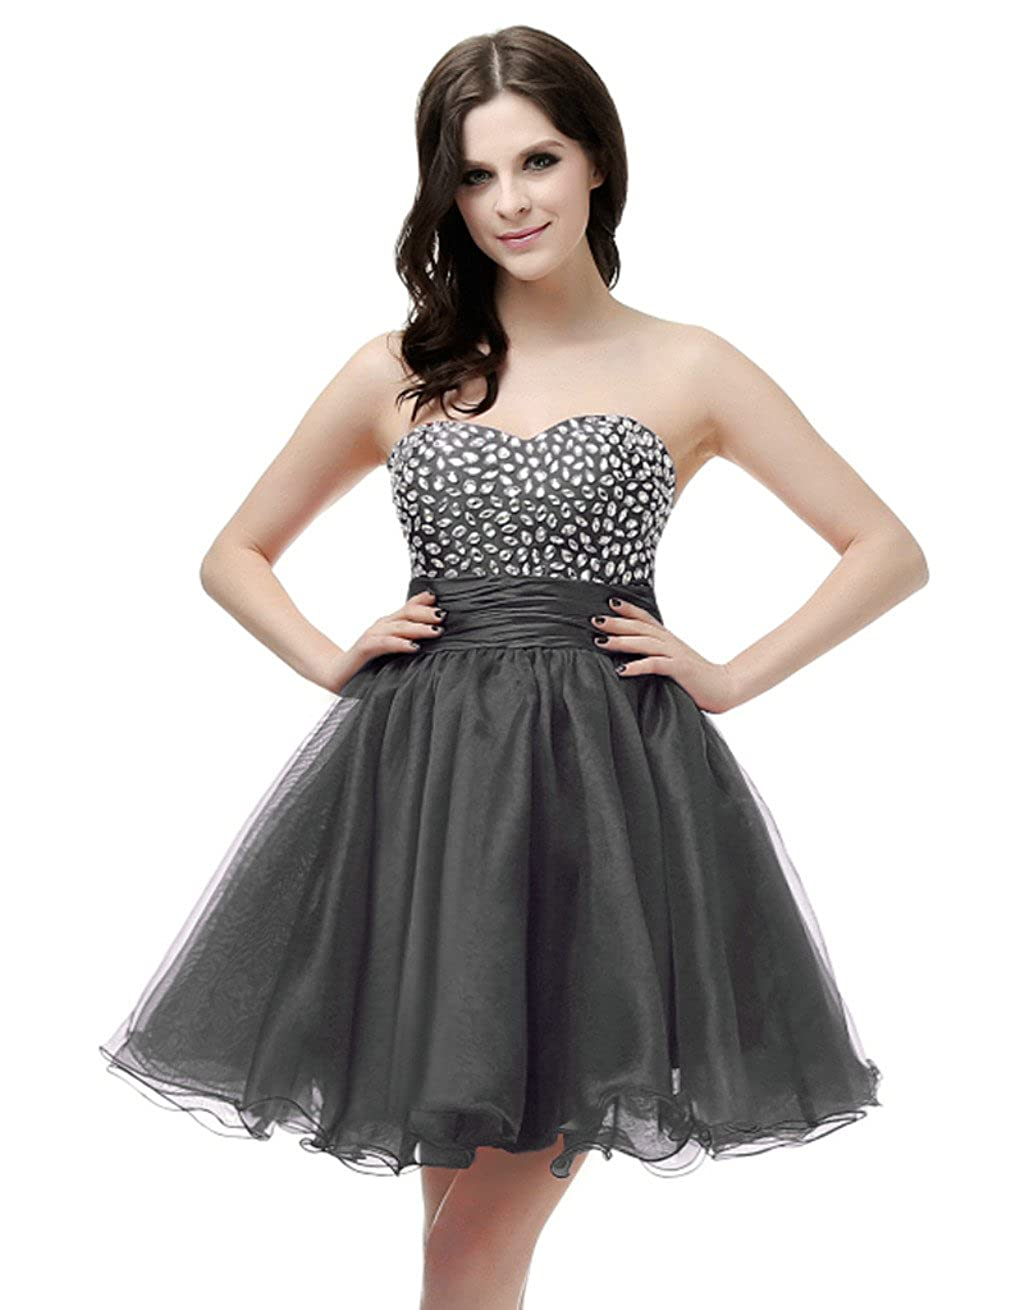 Black Vantexi Women's Strapless Short Prom Homecoming Dress Party Gown